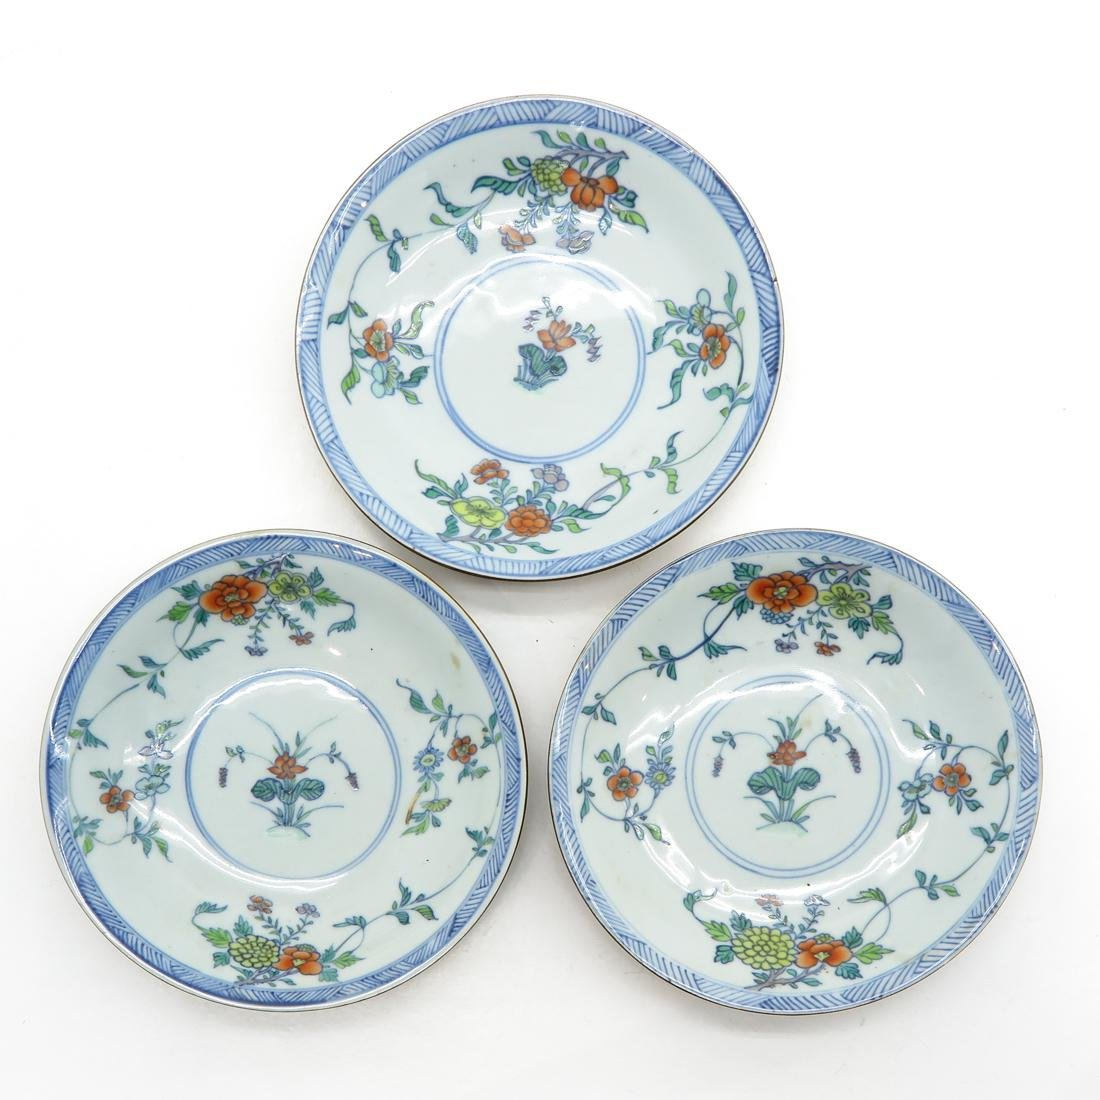 Lot of 3 Small Plates